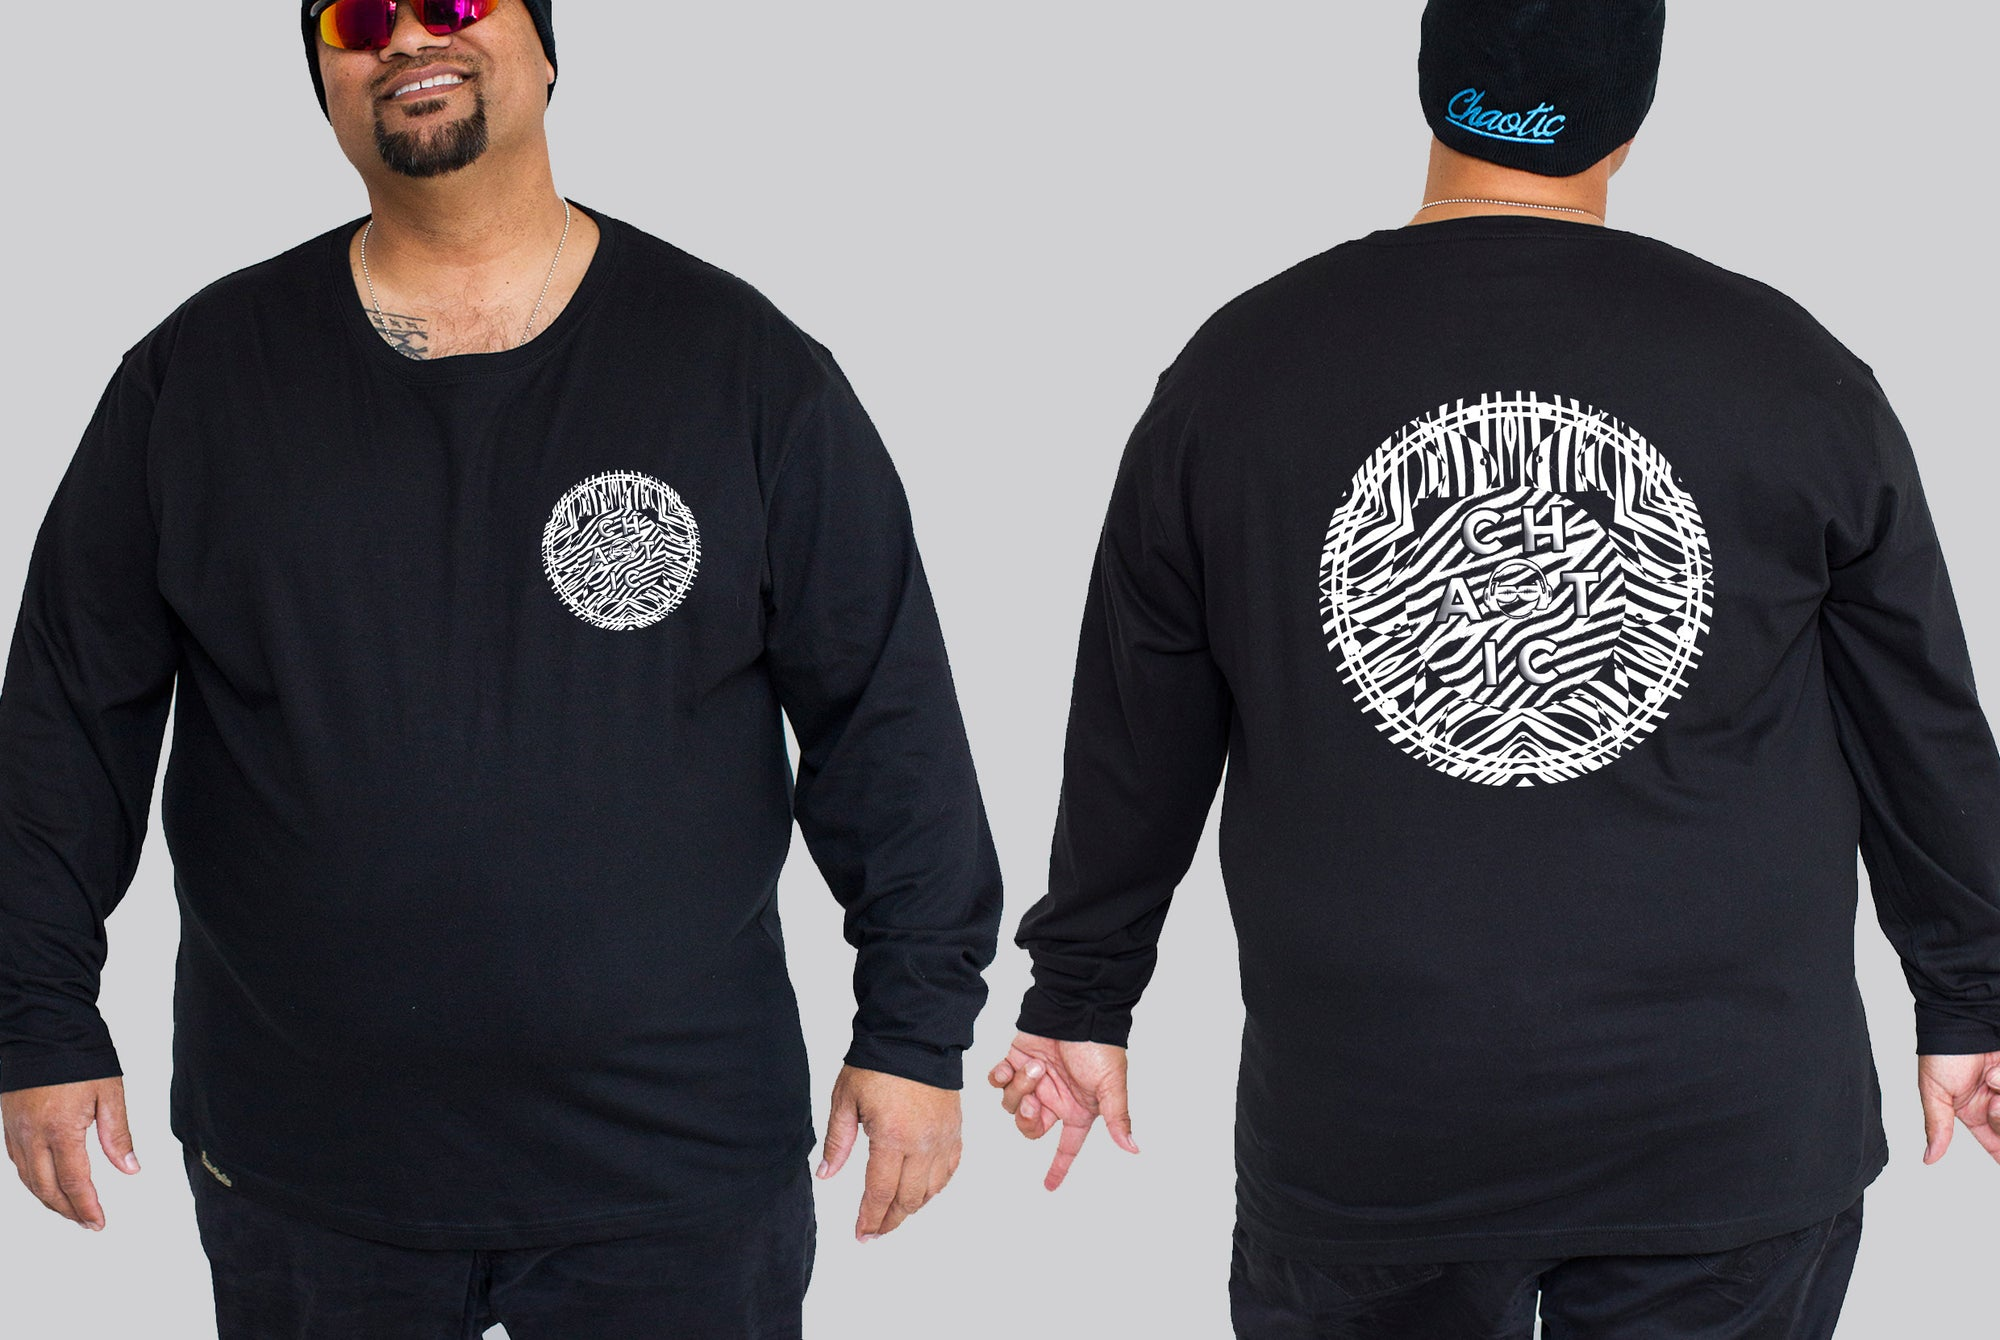 Zebra Chaotic King Size Long Sleeve Tee - Chaotic Clothing f4b249bf0